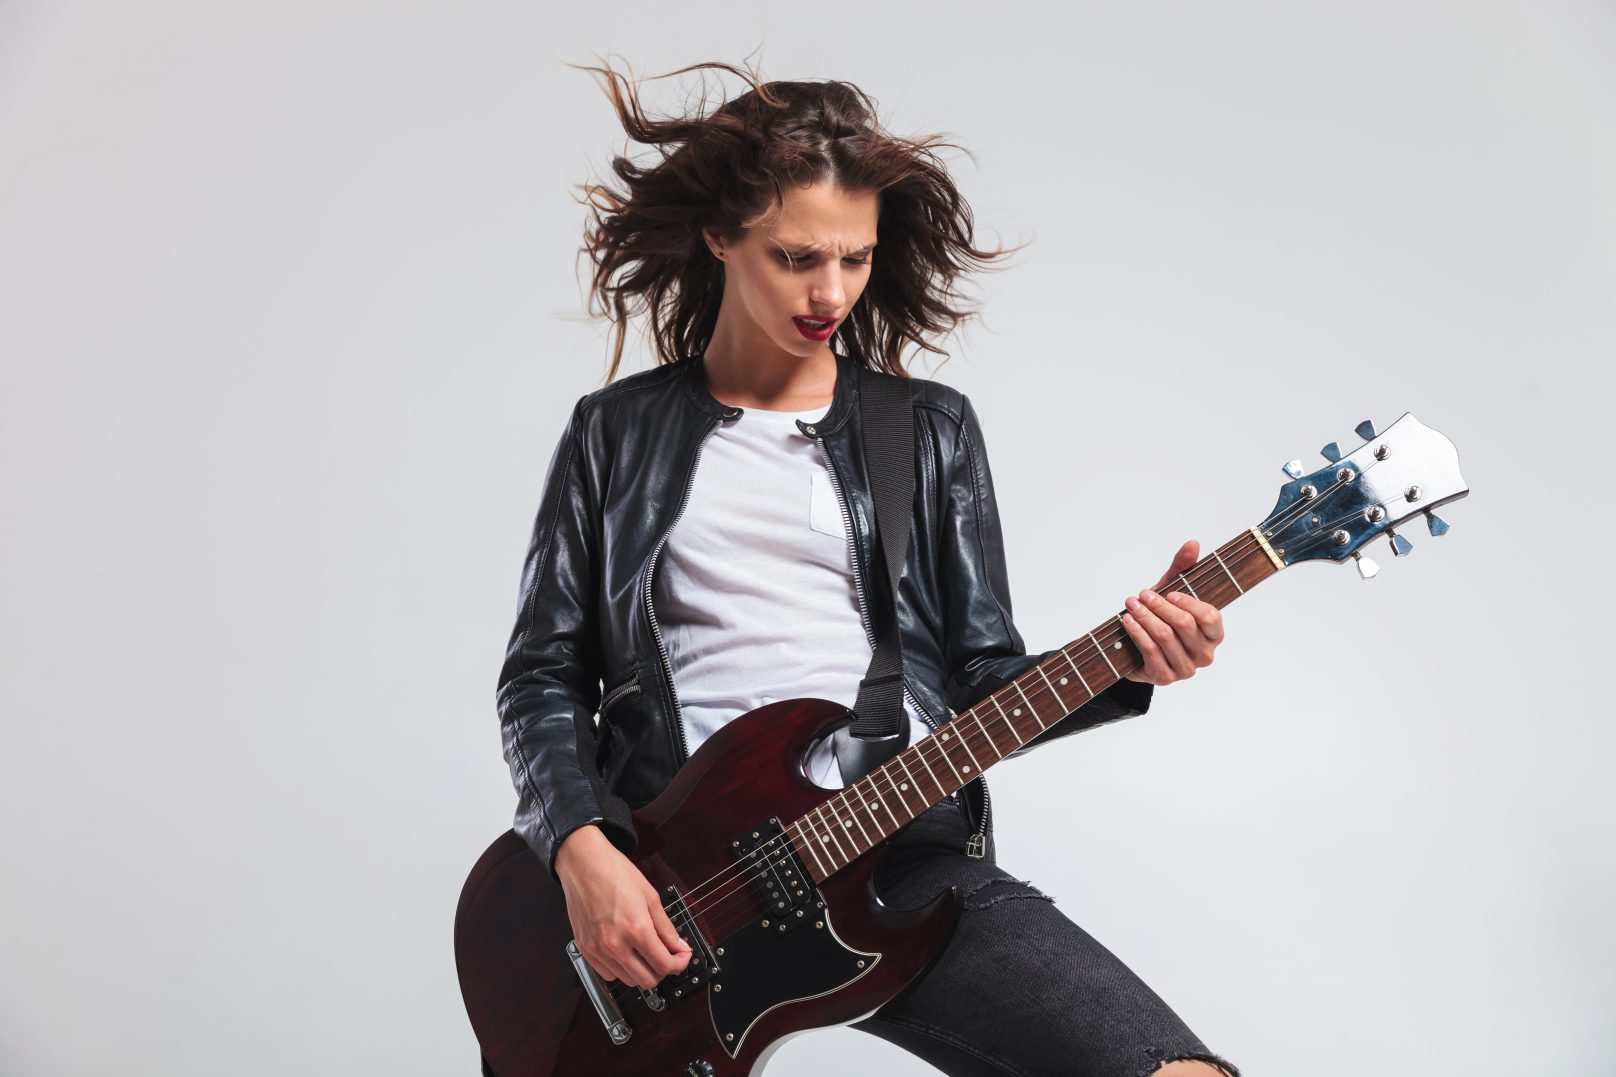 woman with brown flying hair and white shirt playing guitar